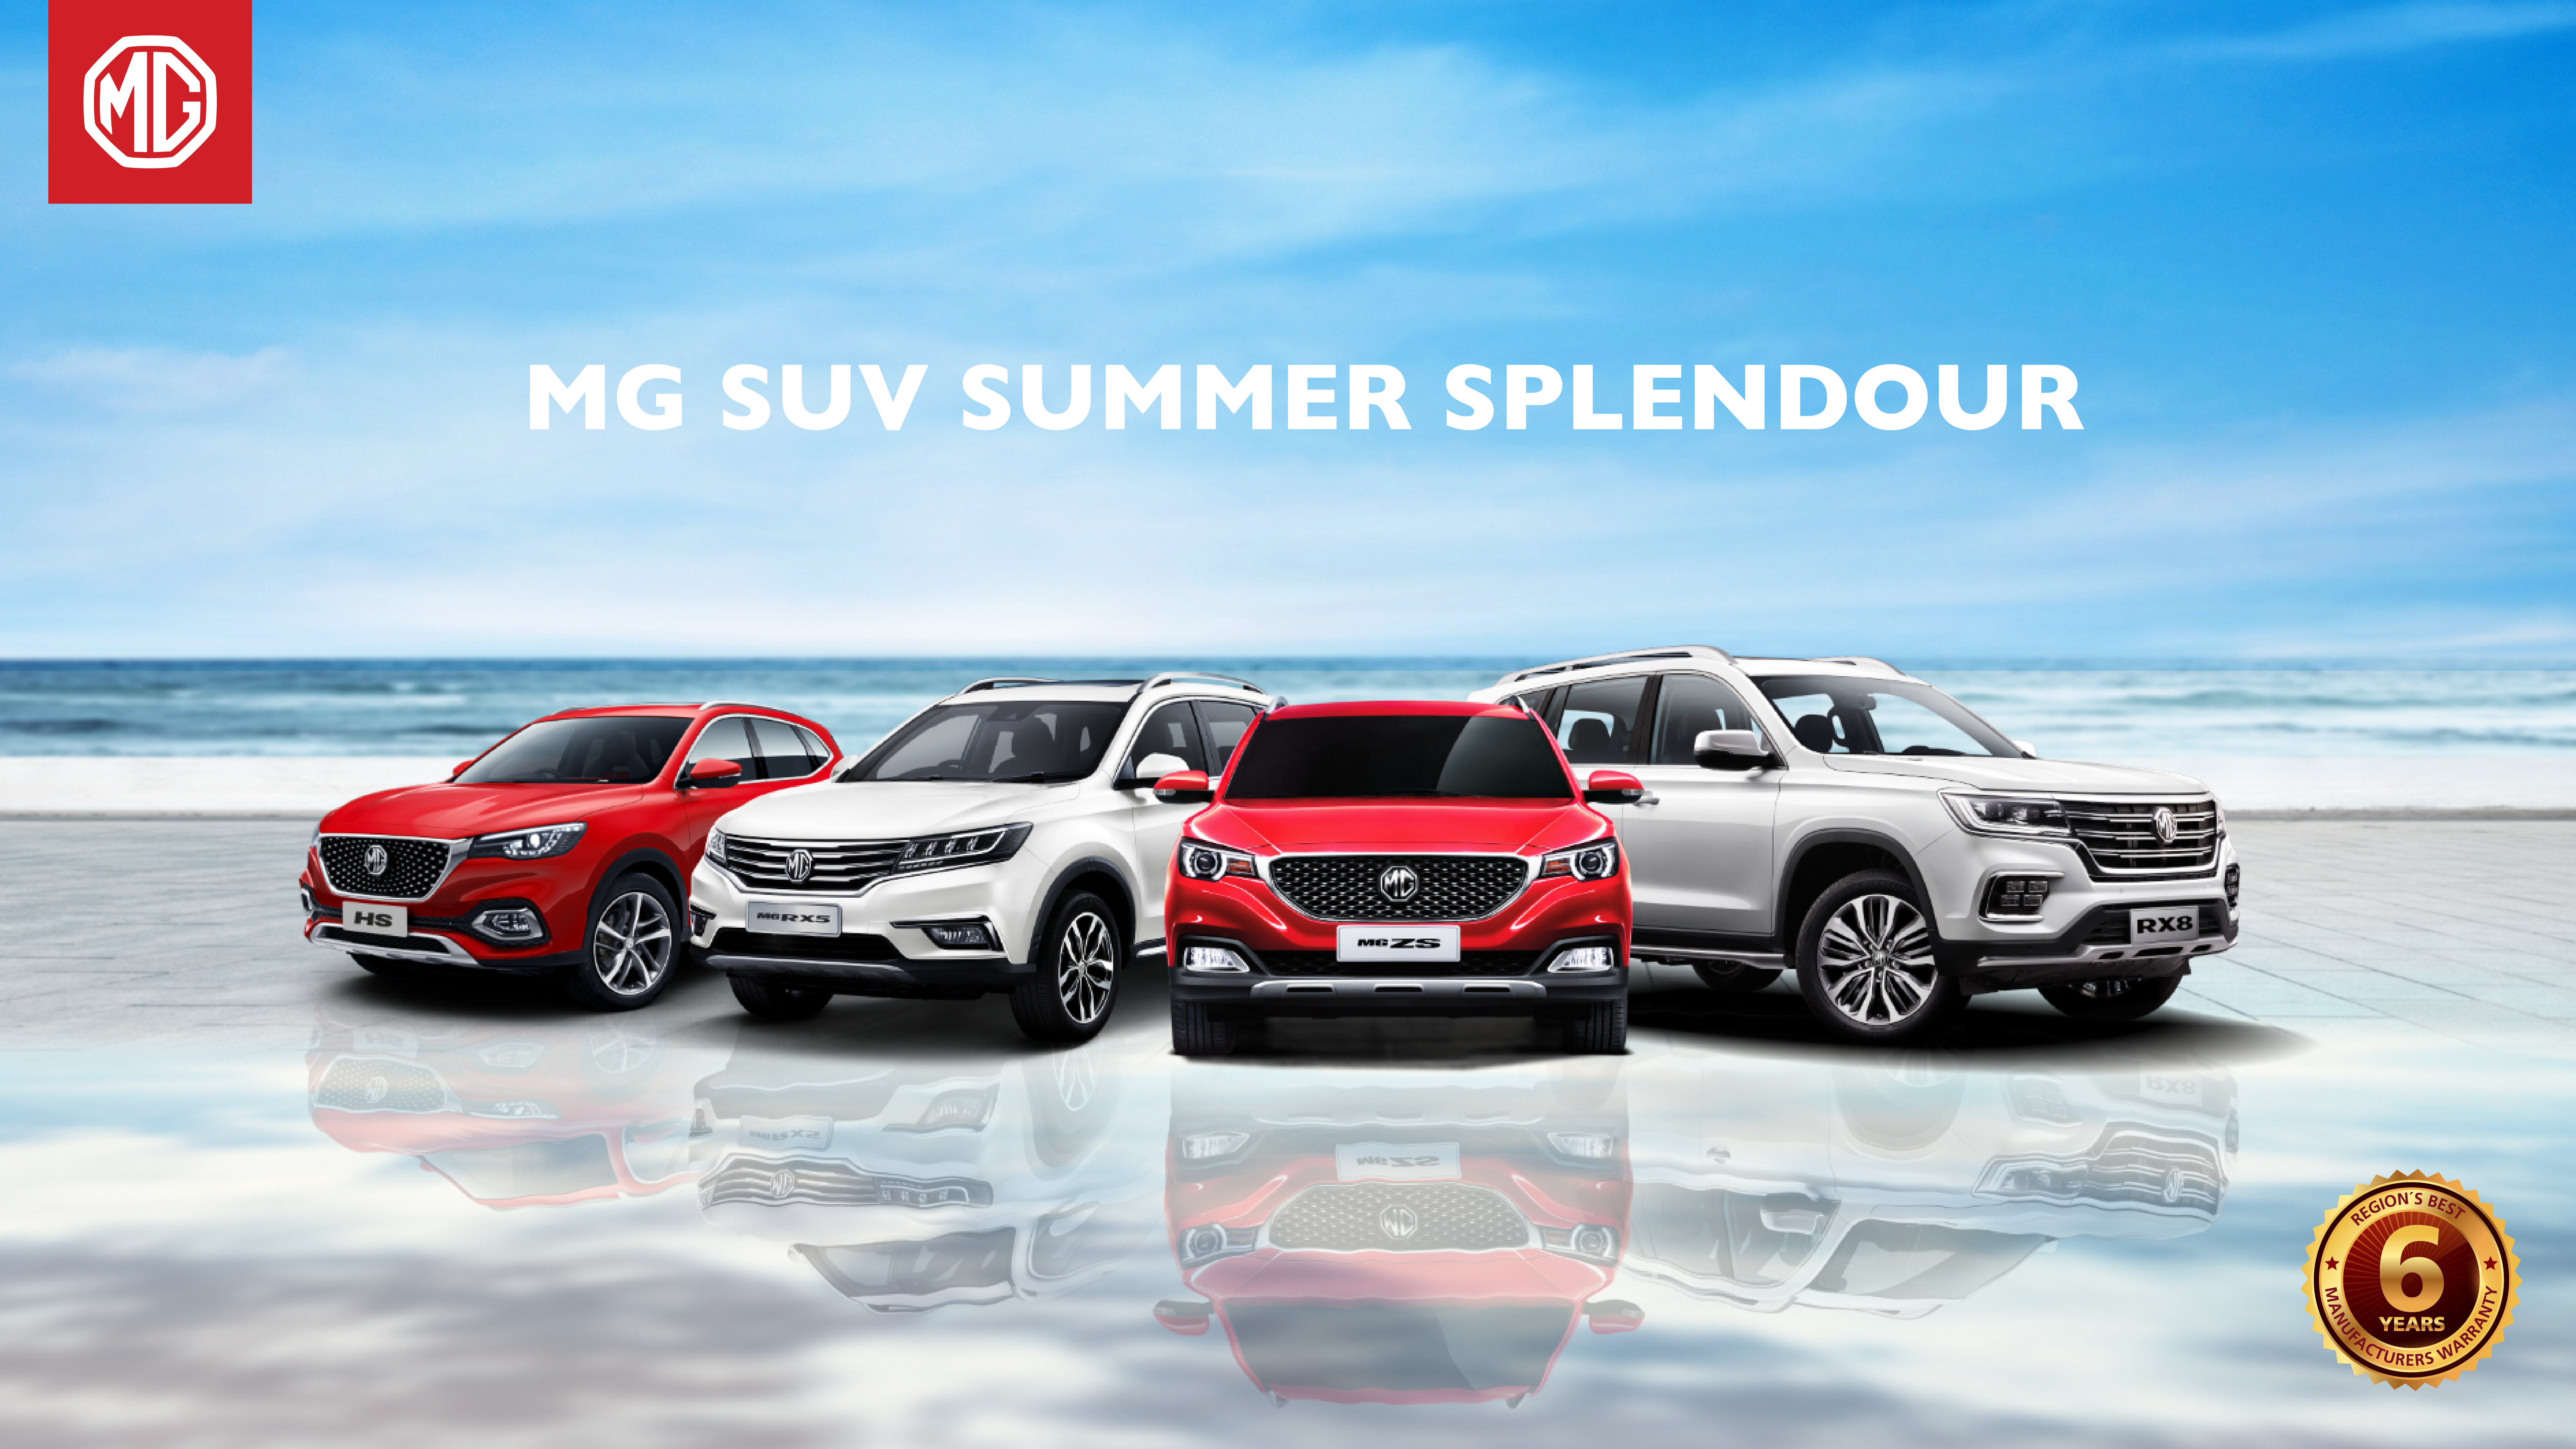 'Zayani Motors' Extends Summer Offers  on 'MG' SUVs Until End of the Month